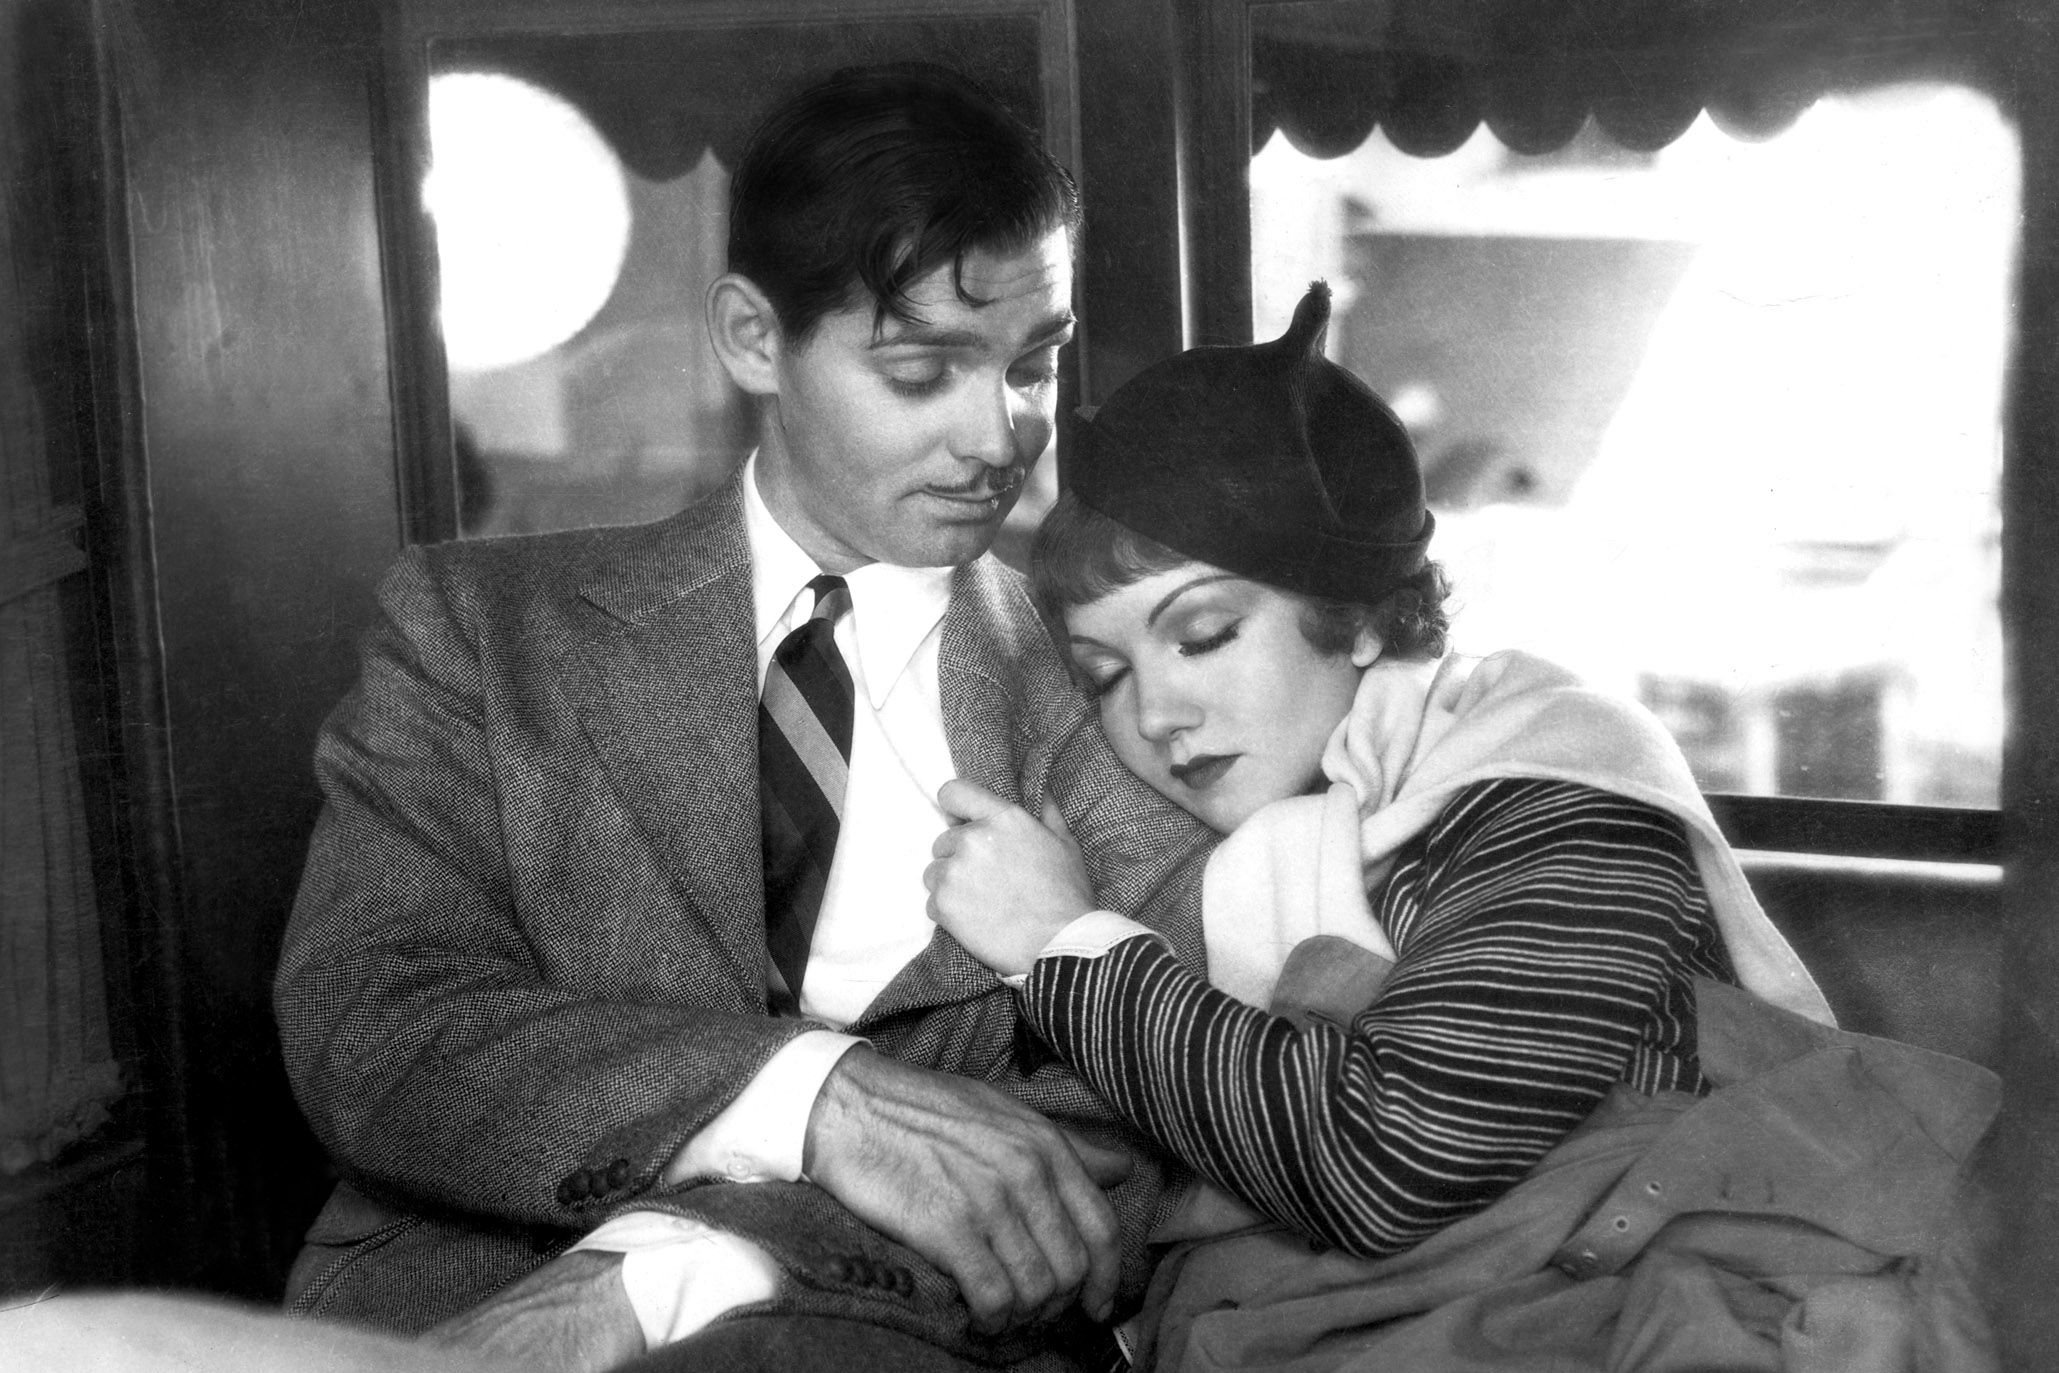 """Watch Now This fast-talking rom-com directed by Frank Capra invented the genre known as the """"screwball comedy"""" way back when movies with sound were still called """"talkies."""" In one of the first road movies ever, Clark Gable and Claudette Colbert embodied a sexy, mature, smart relationship that was surprisingly forward-thinking for its time."""